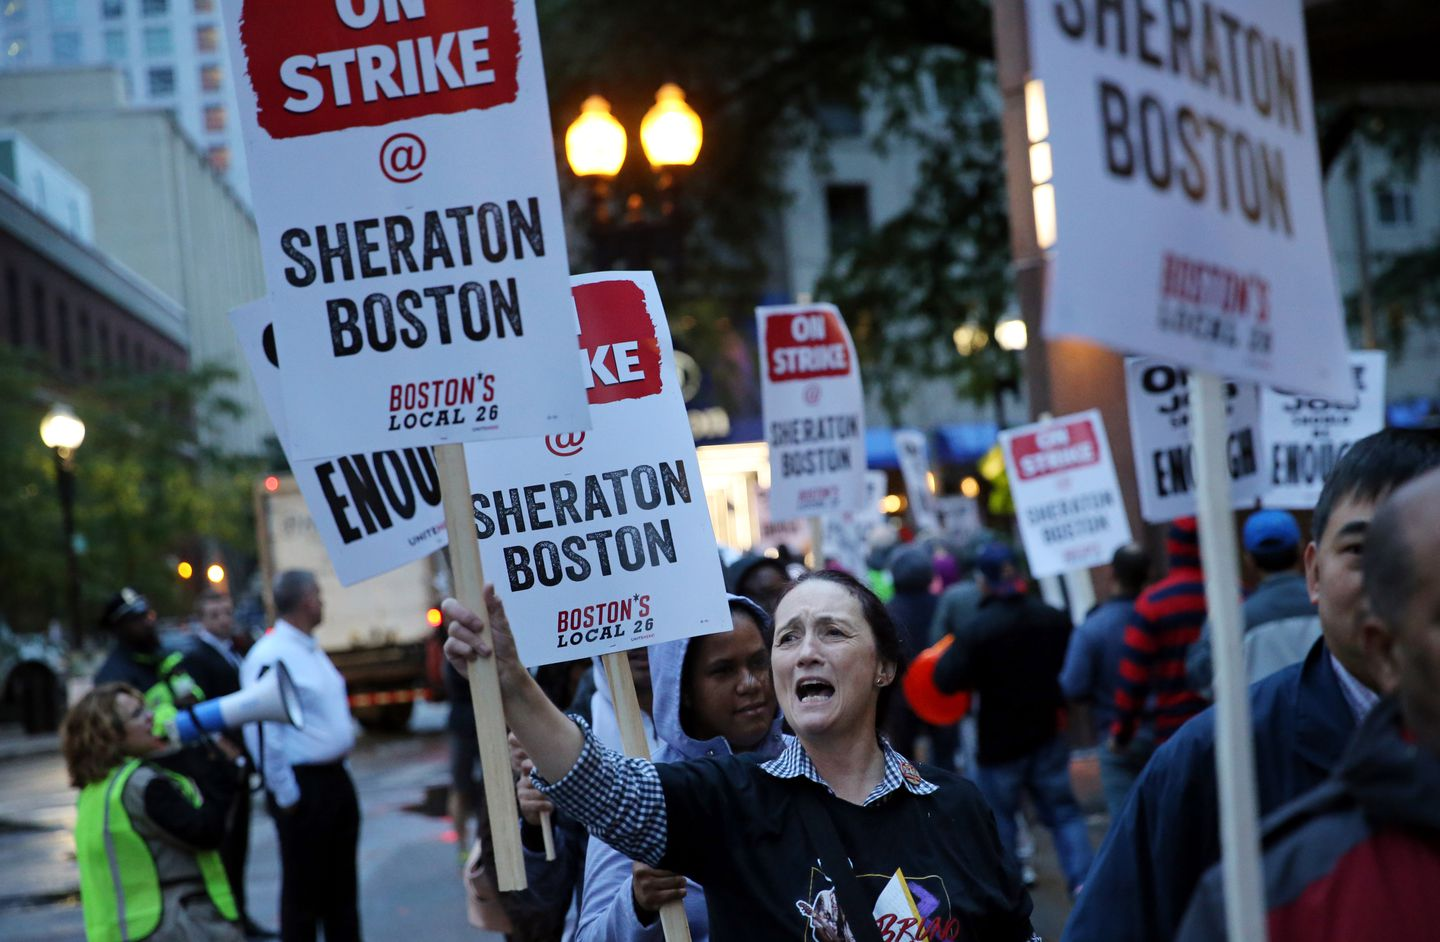 Last fall, hotel workers walked off the job at seven Marriott hotels in Boston, including the Sheraton Boston.